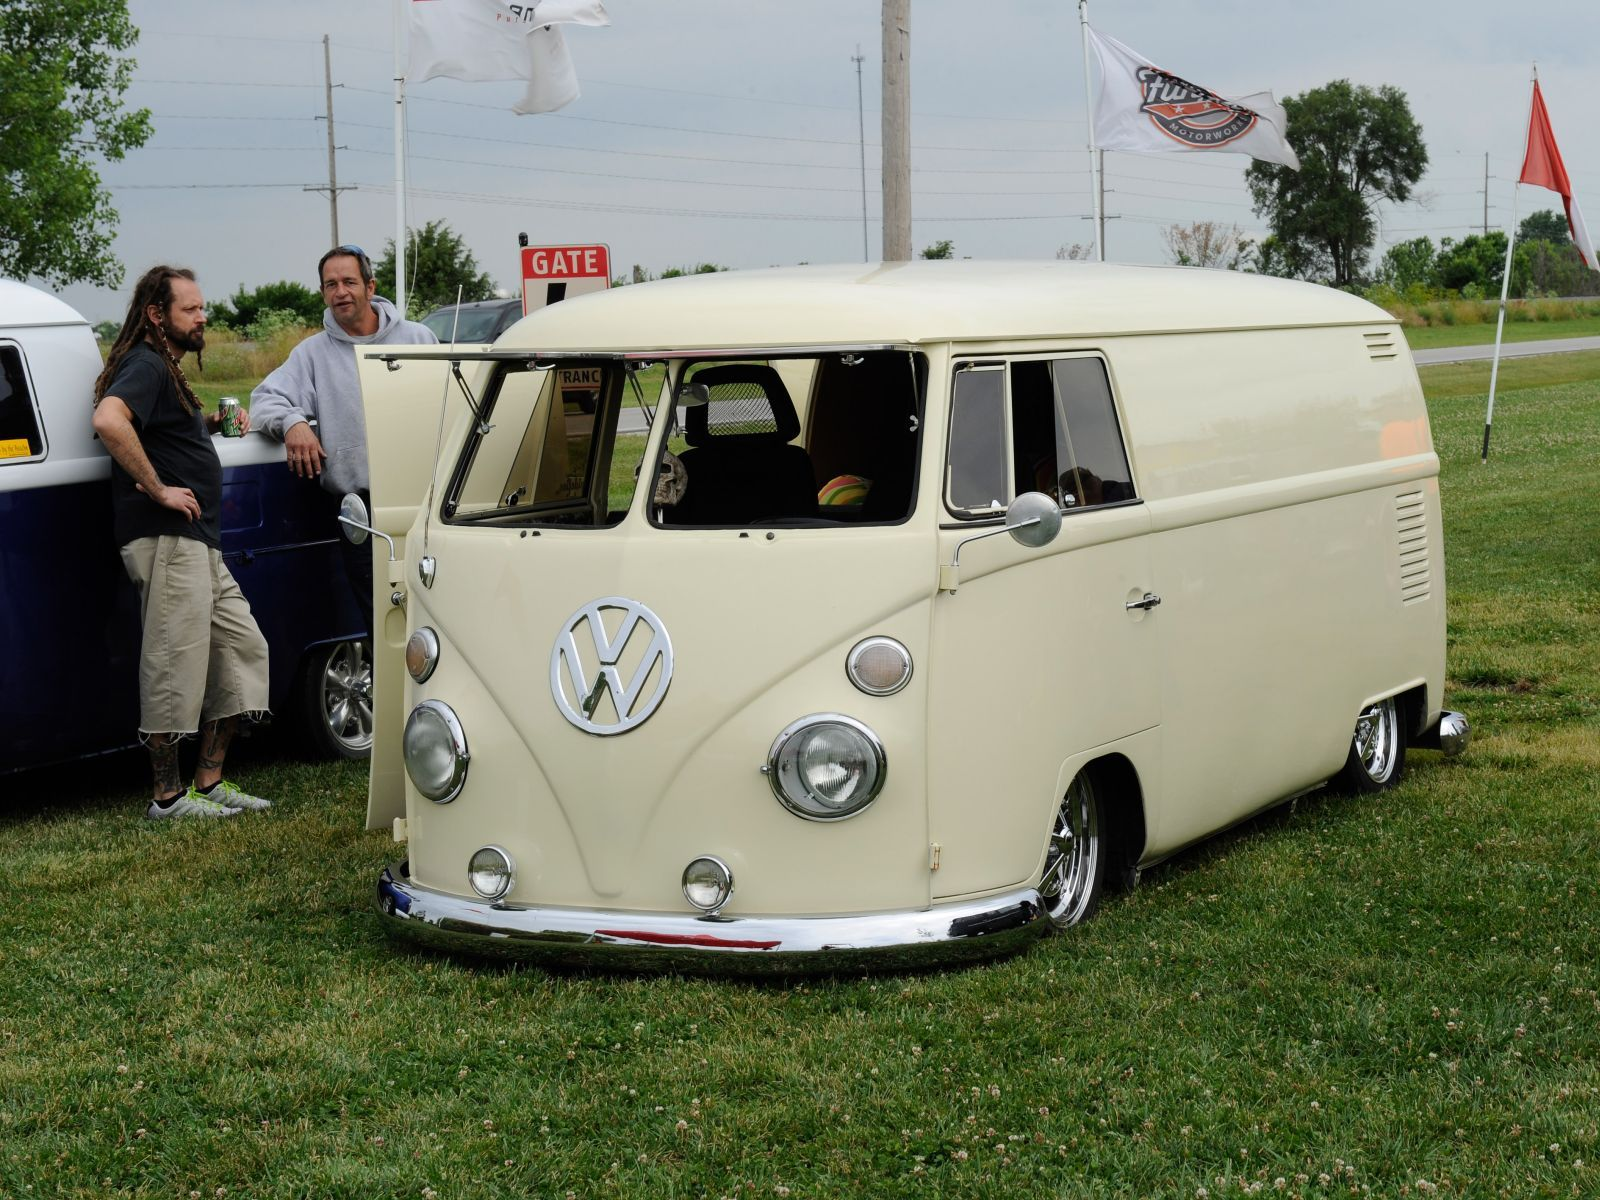 Funfest For Air Cooled Vw 2012 Vw Van Lowered Photo 98 1600x1200